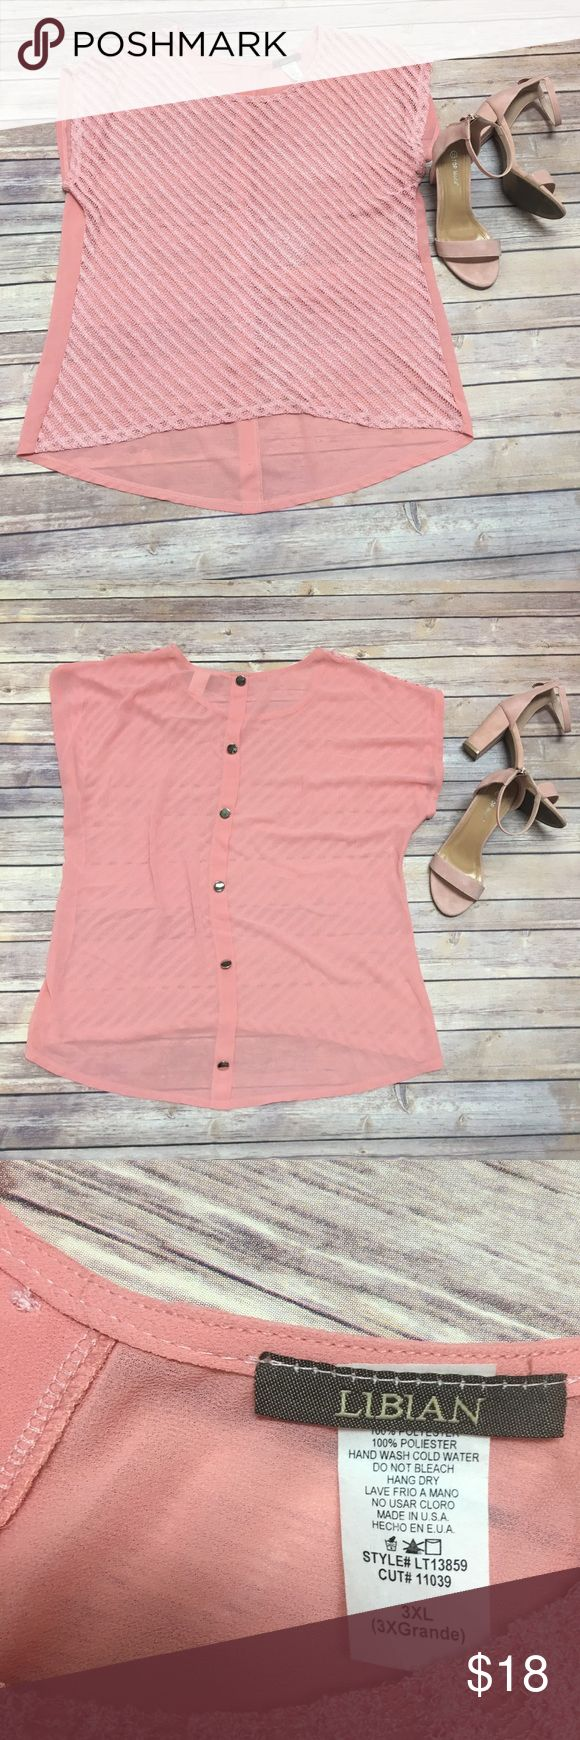 Libian Sheer Peach-Pink Short Sleeve Top Libian Clothing • Peach - Pink tone over shirt • can be used with a undershirt or bralette • front is thin crochet knit • back has buttons down the center for an extra chic classy look • Size 3XL • 100% polyester • Excellent pre-loved condition • make me an offer! Feel free to check out the rest of my closet • Bundle & Save! Libian Tops